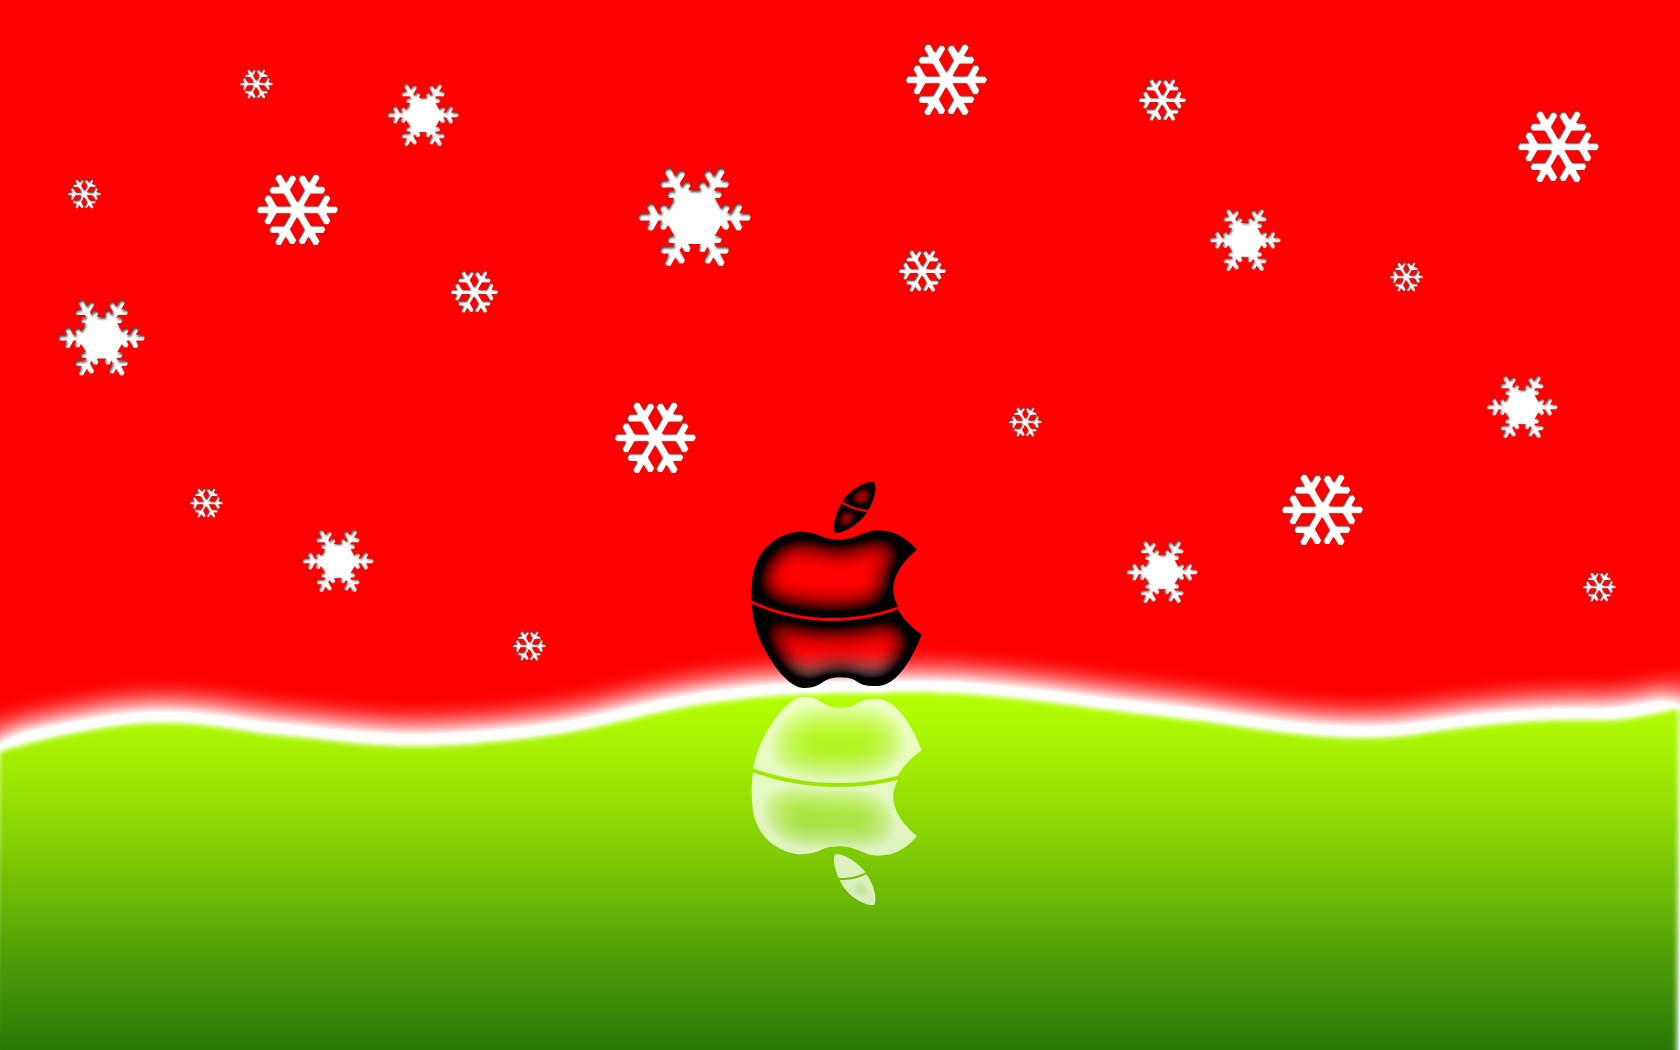 Christmas Wallpaper For Macbook Pro 13 Inch Cenksms